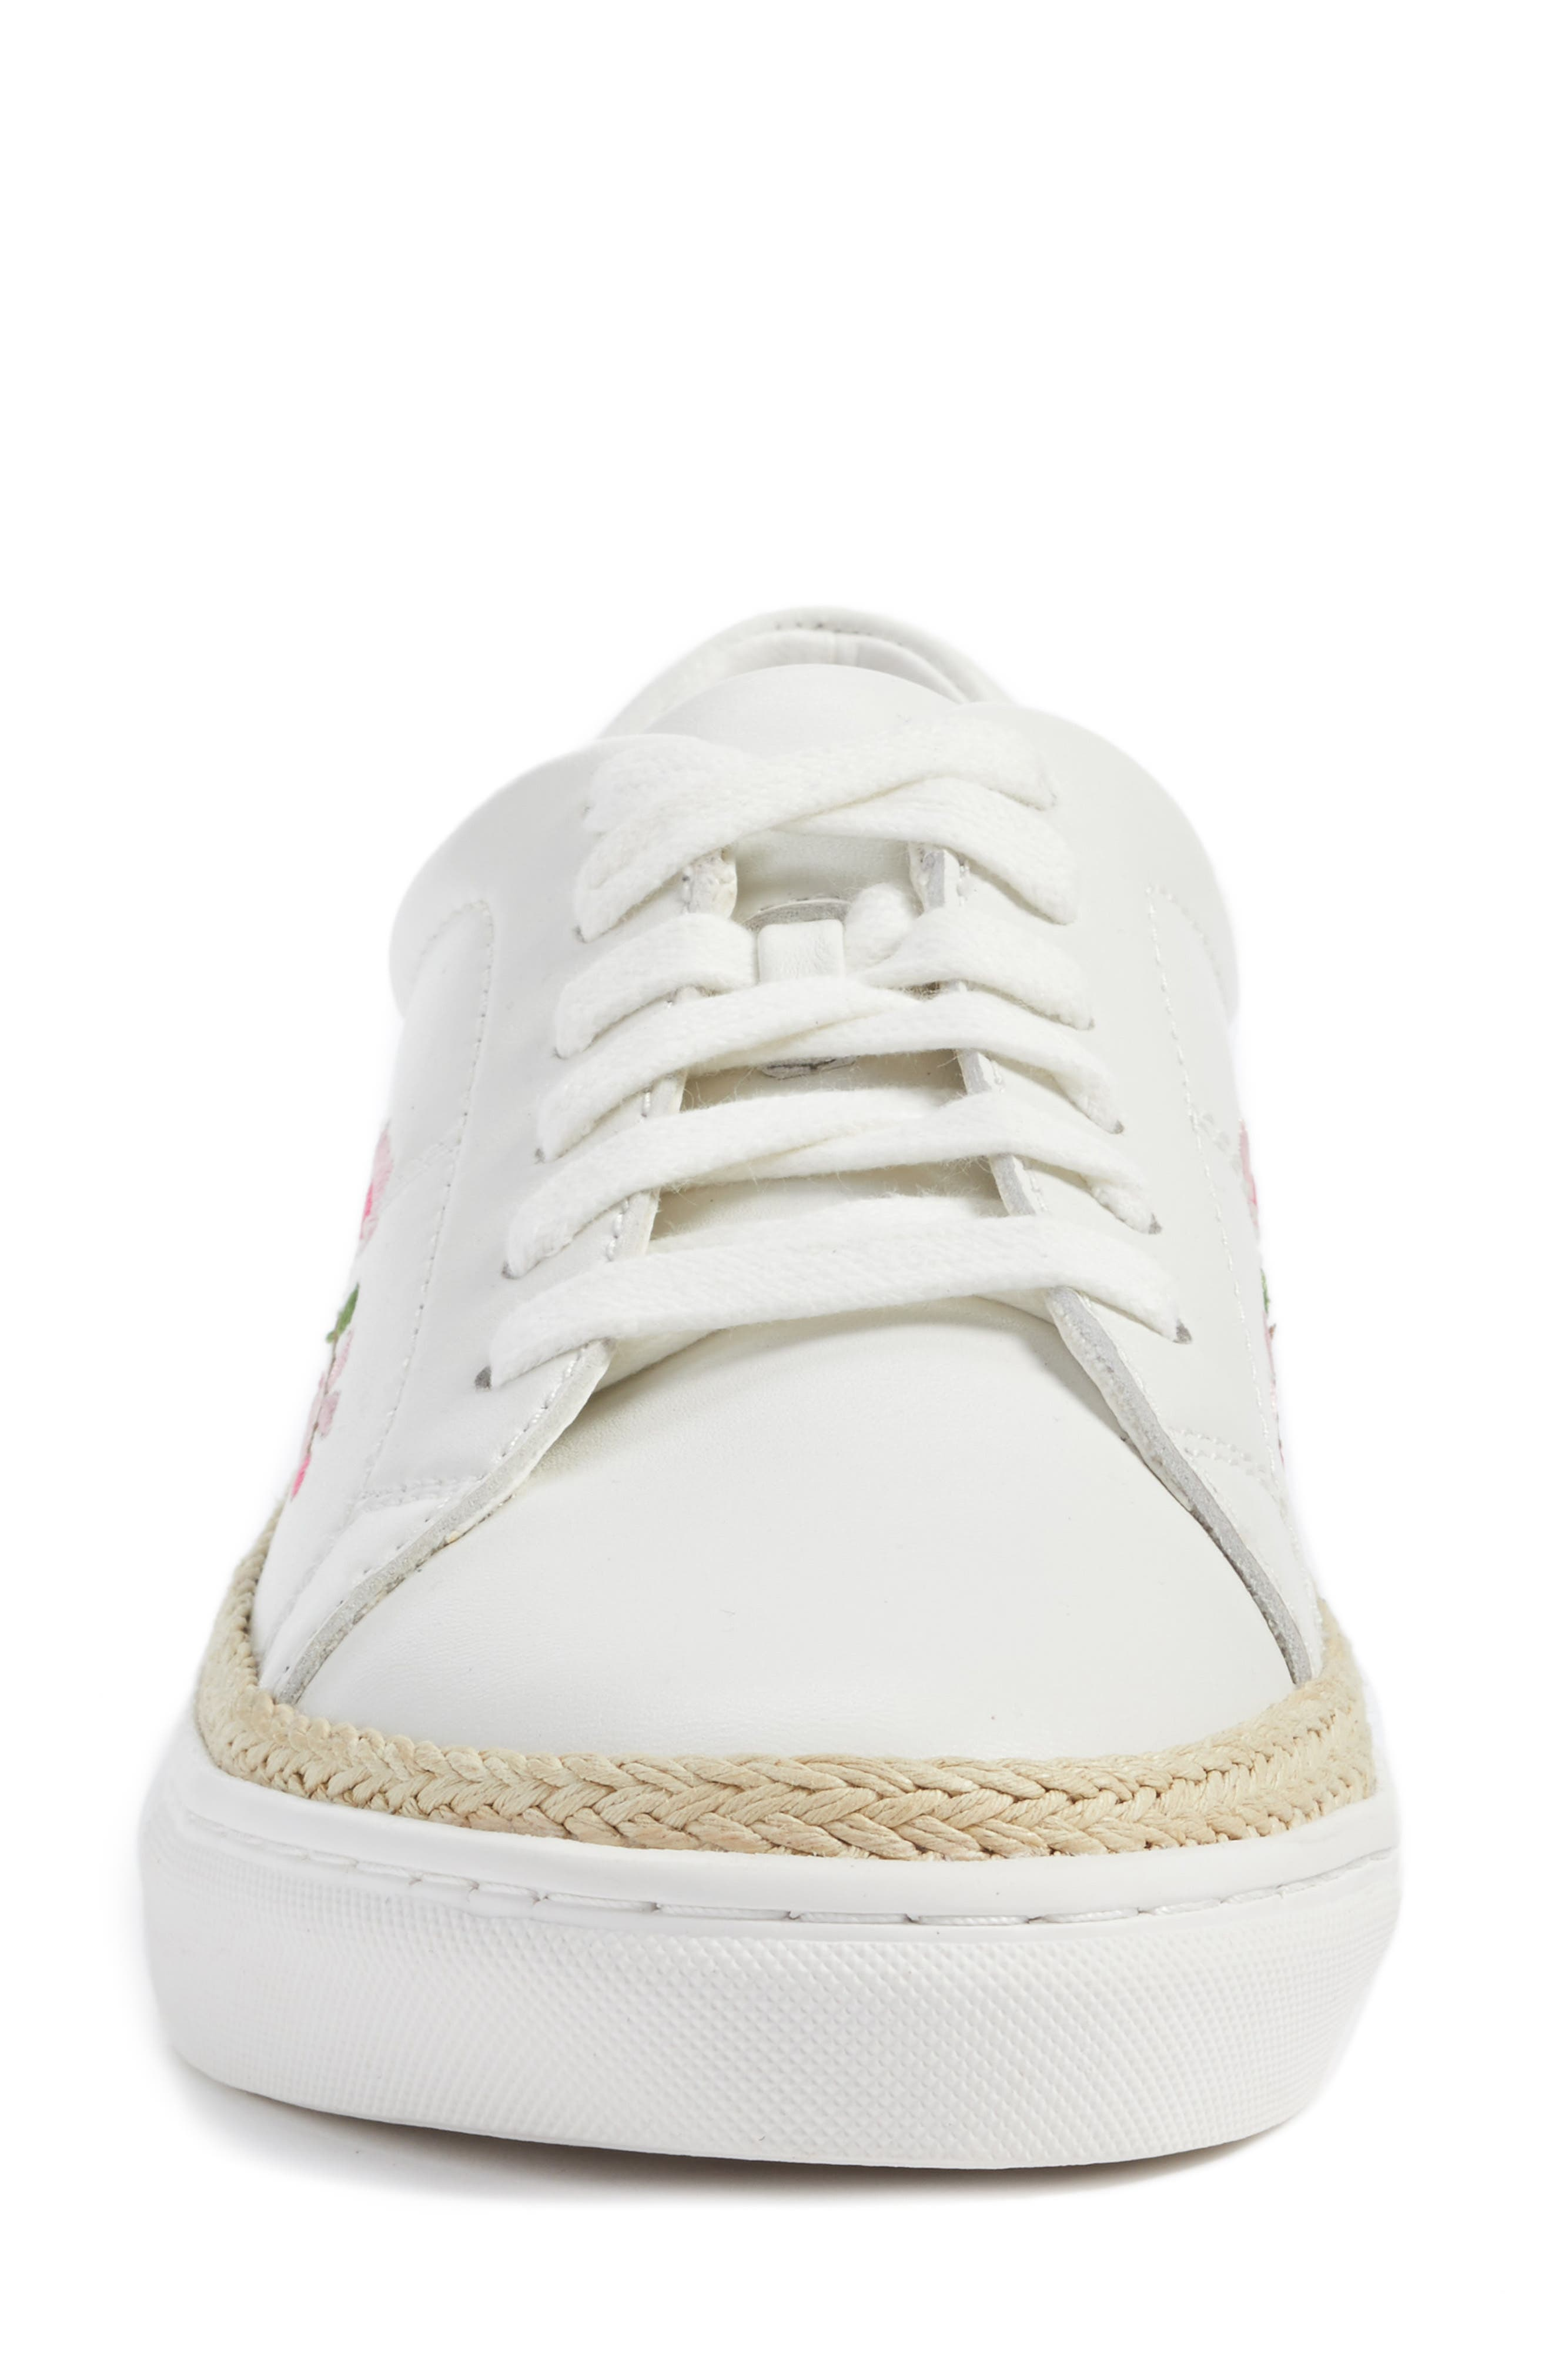 Perry Lea Embroidered Sneaker,                             Alternate thumbnail 5, color,                             White Leather